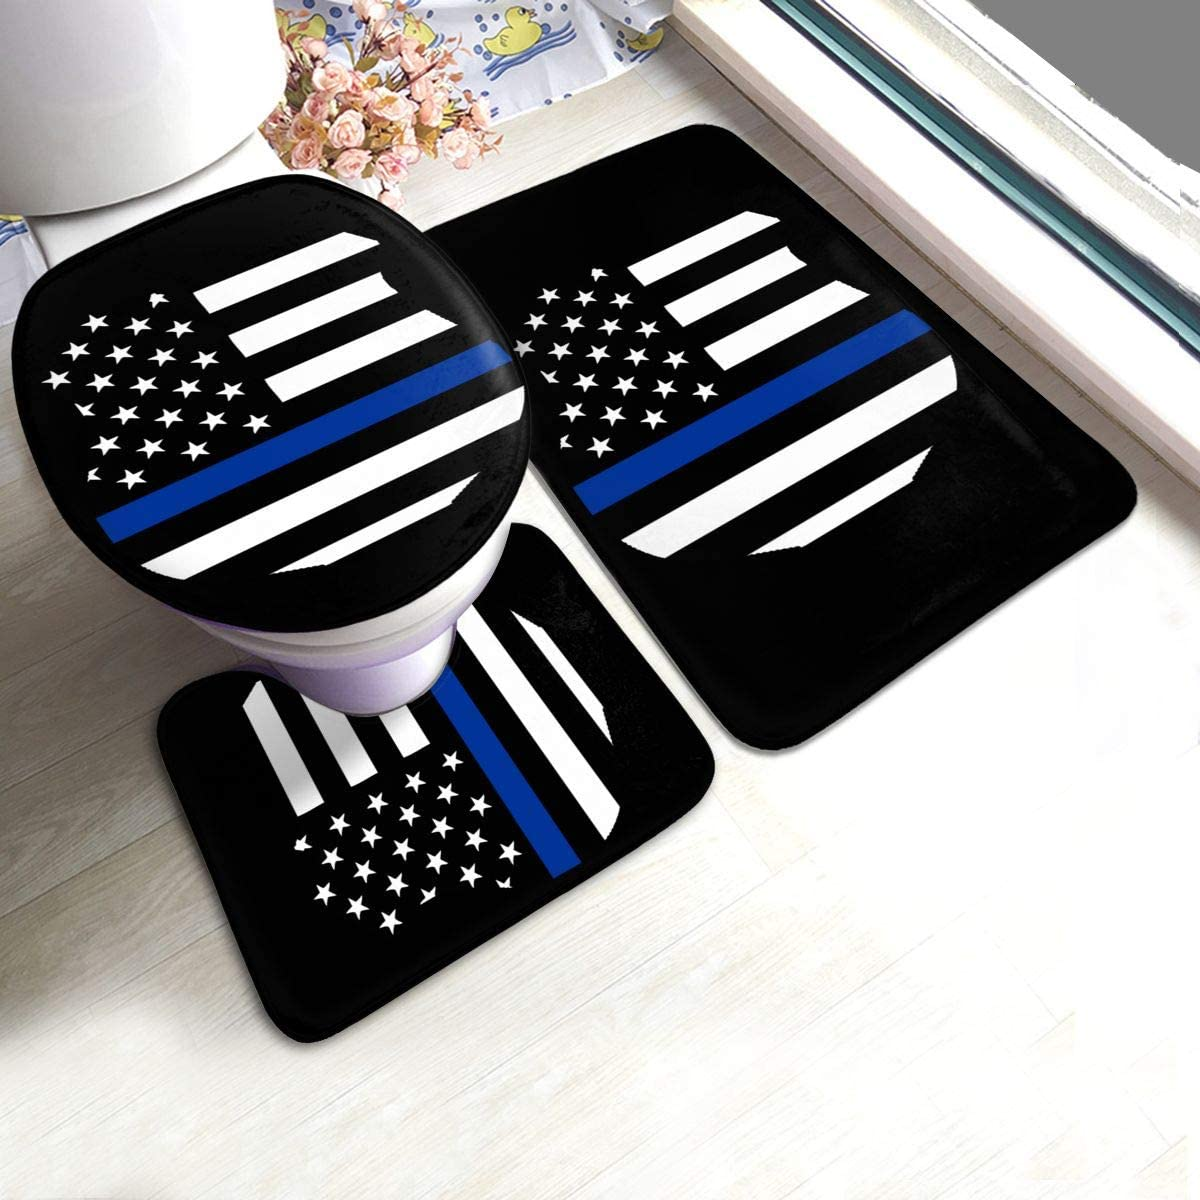 DING Police K9 Thin Blue Line Soft Comfort Flannel Bathroom Mats Non-Slip Absorbent Toilet Seat Cover Bath Mat Lid Cover,3pcs Set Rugs